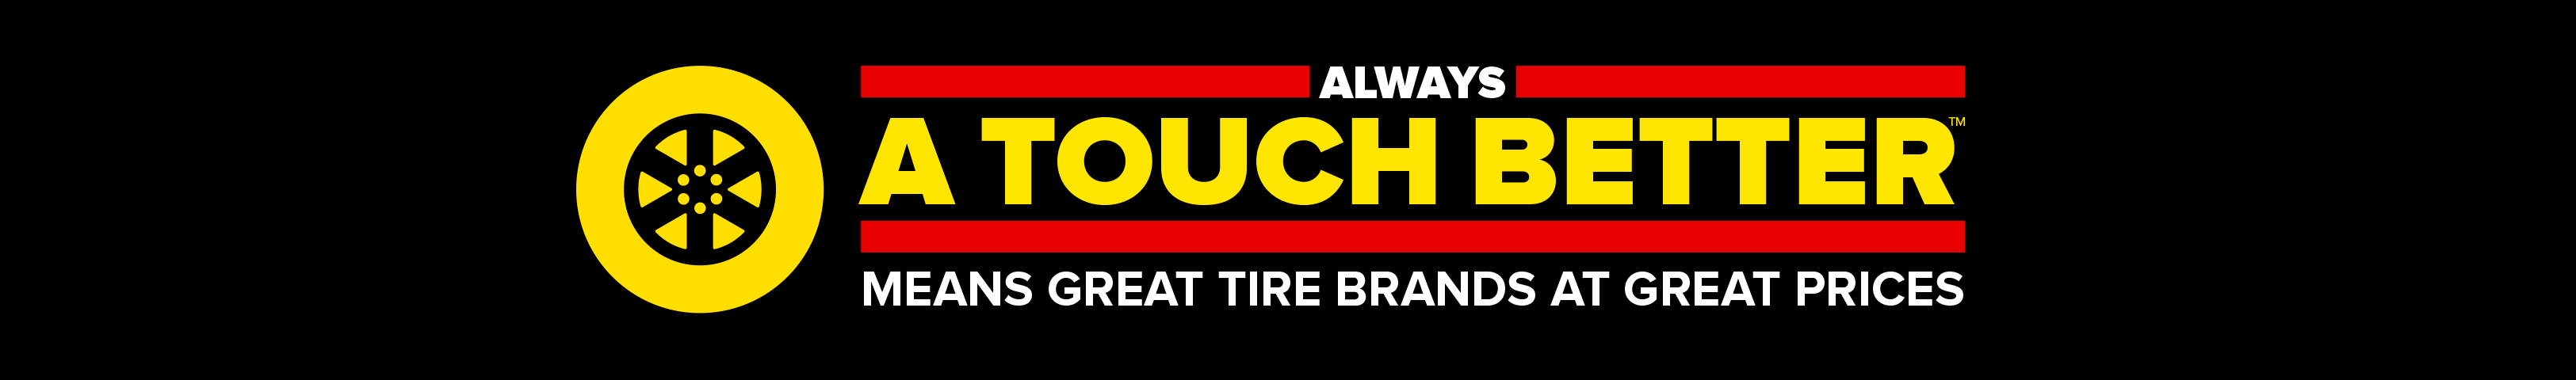 Always a Touch Better Means Great Tire Brands at Great Prices